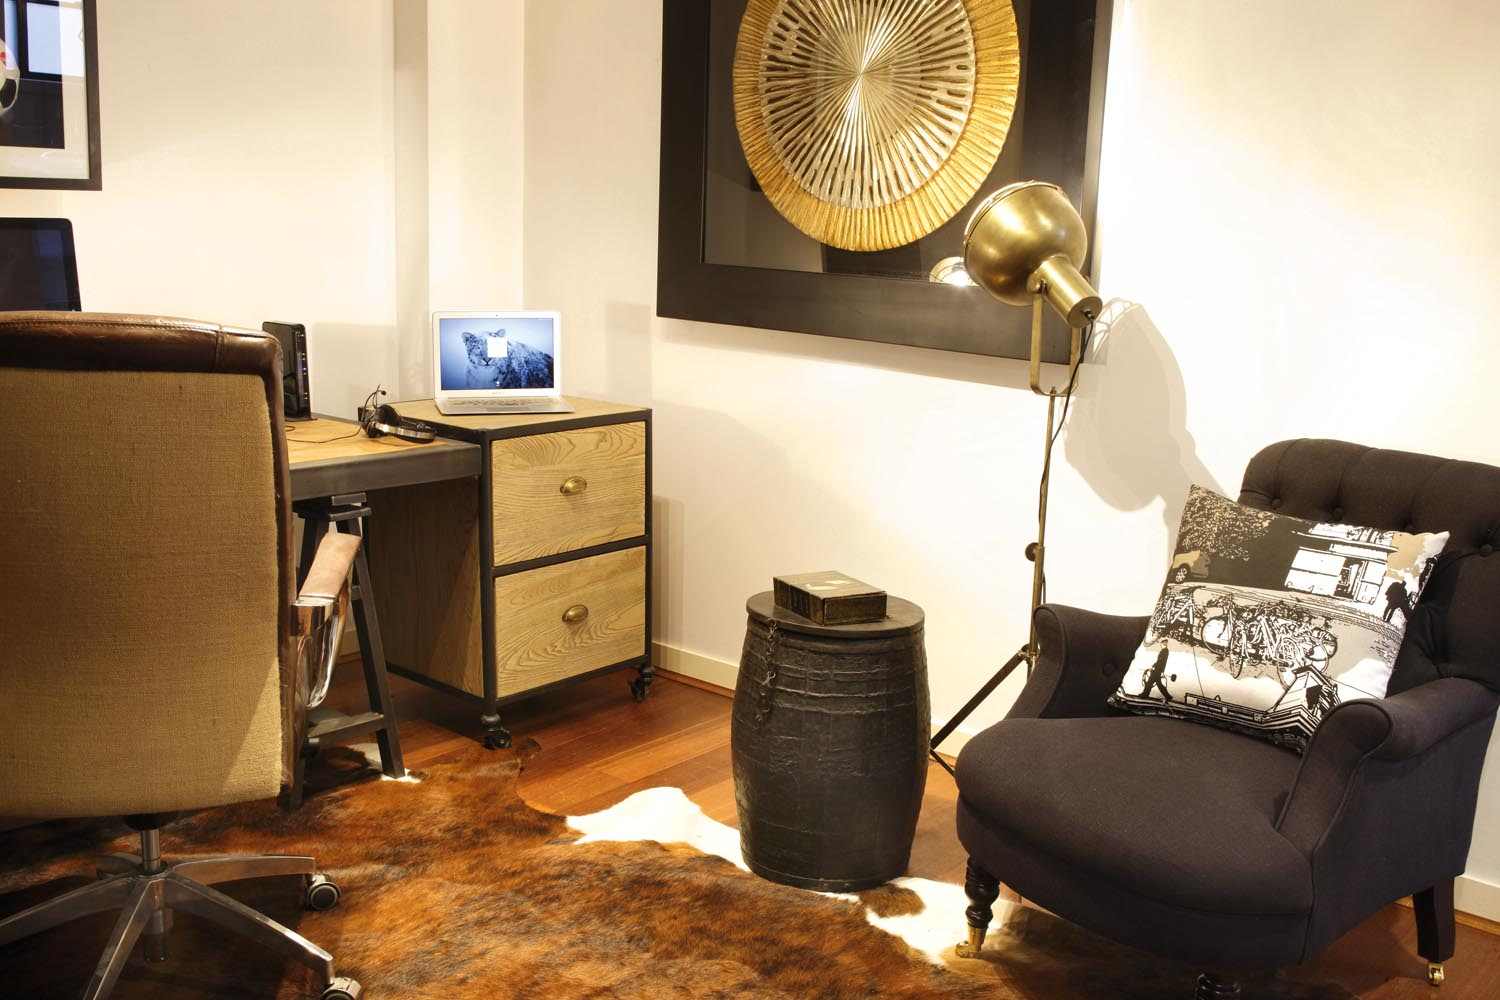 Busy art pieces add interest and liven up a simple room